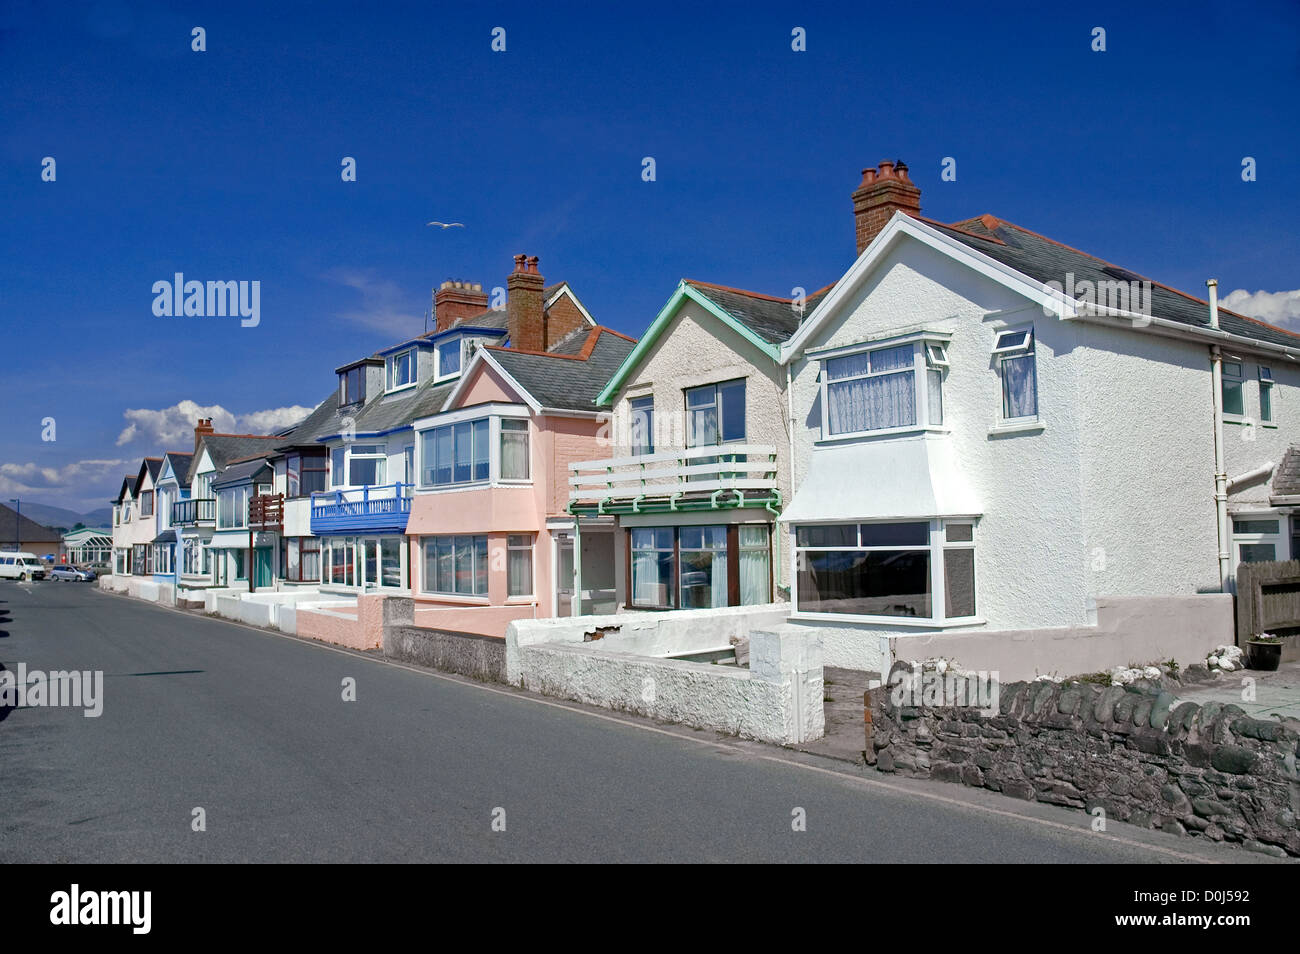 Residential houses in Borth. - Stock Image